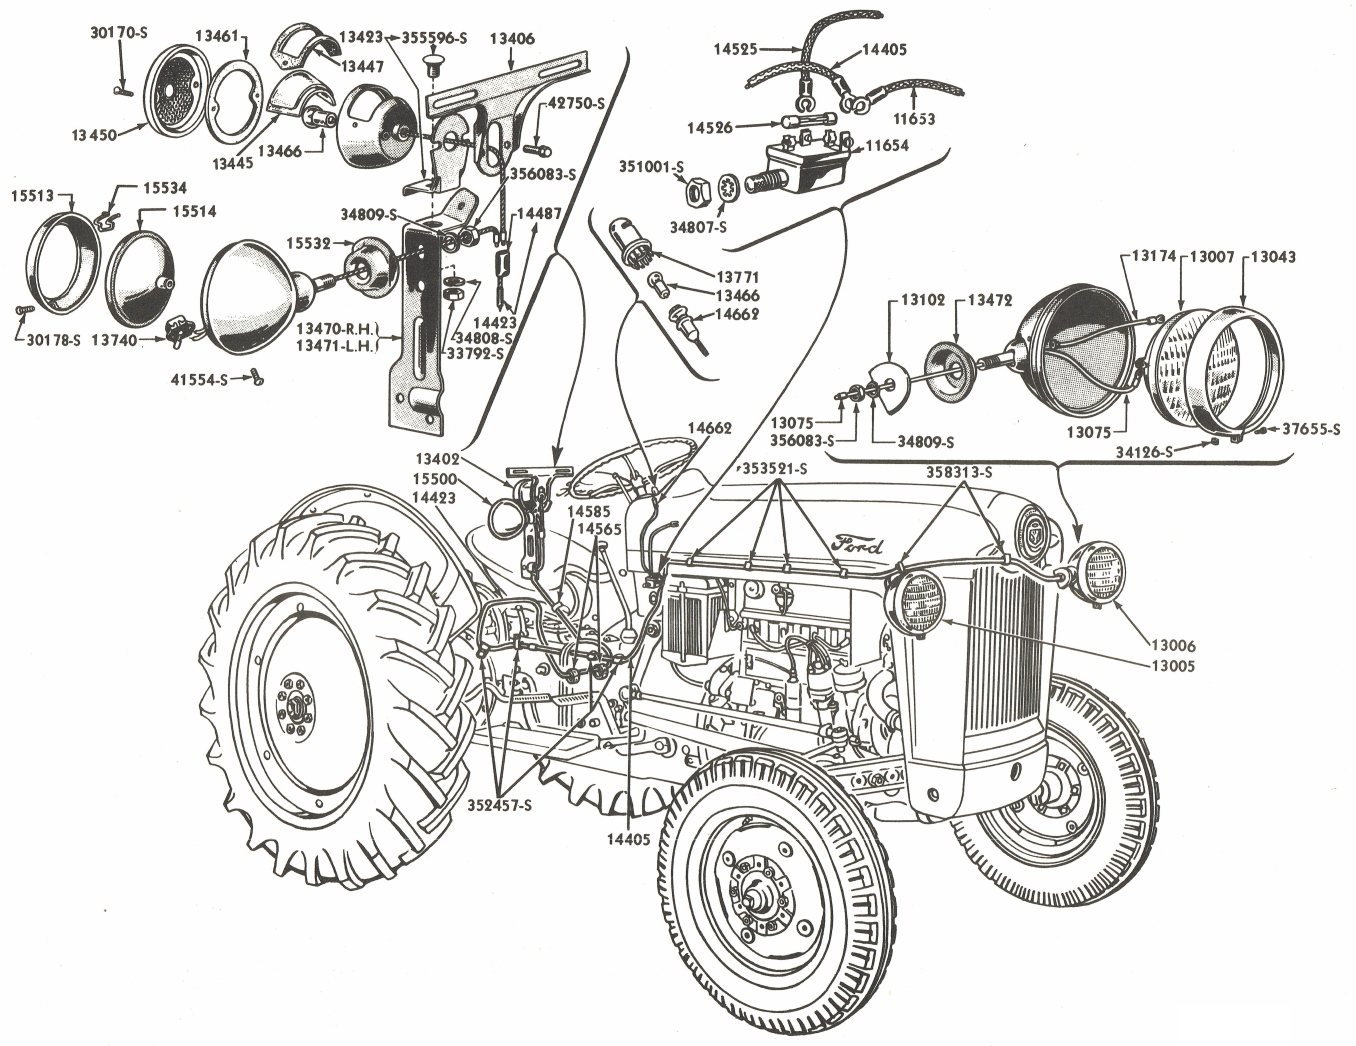 Firing Order For 1953 Ford Jubilee Tractor